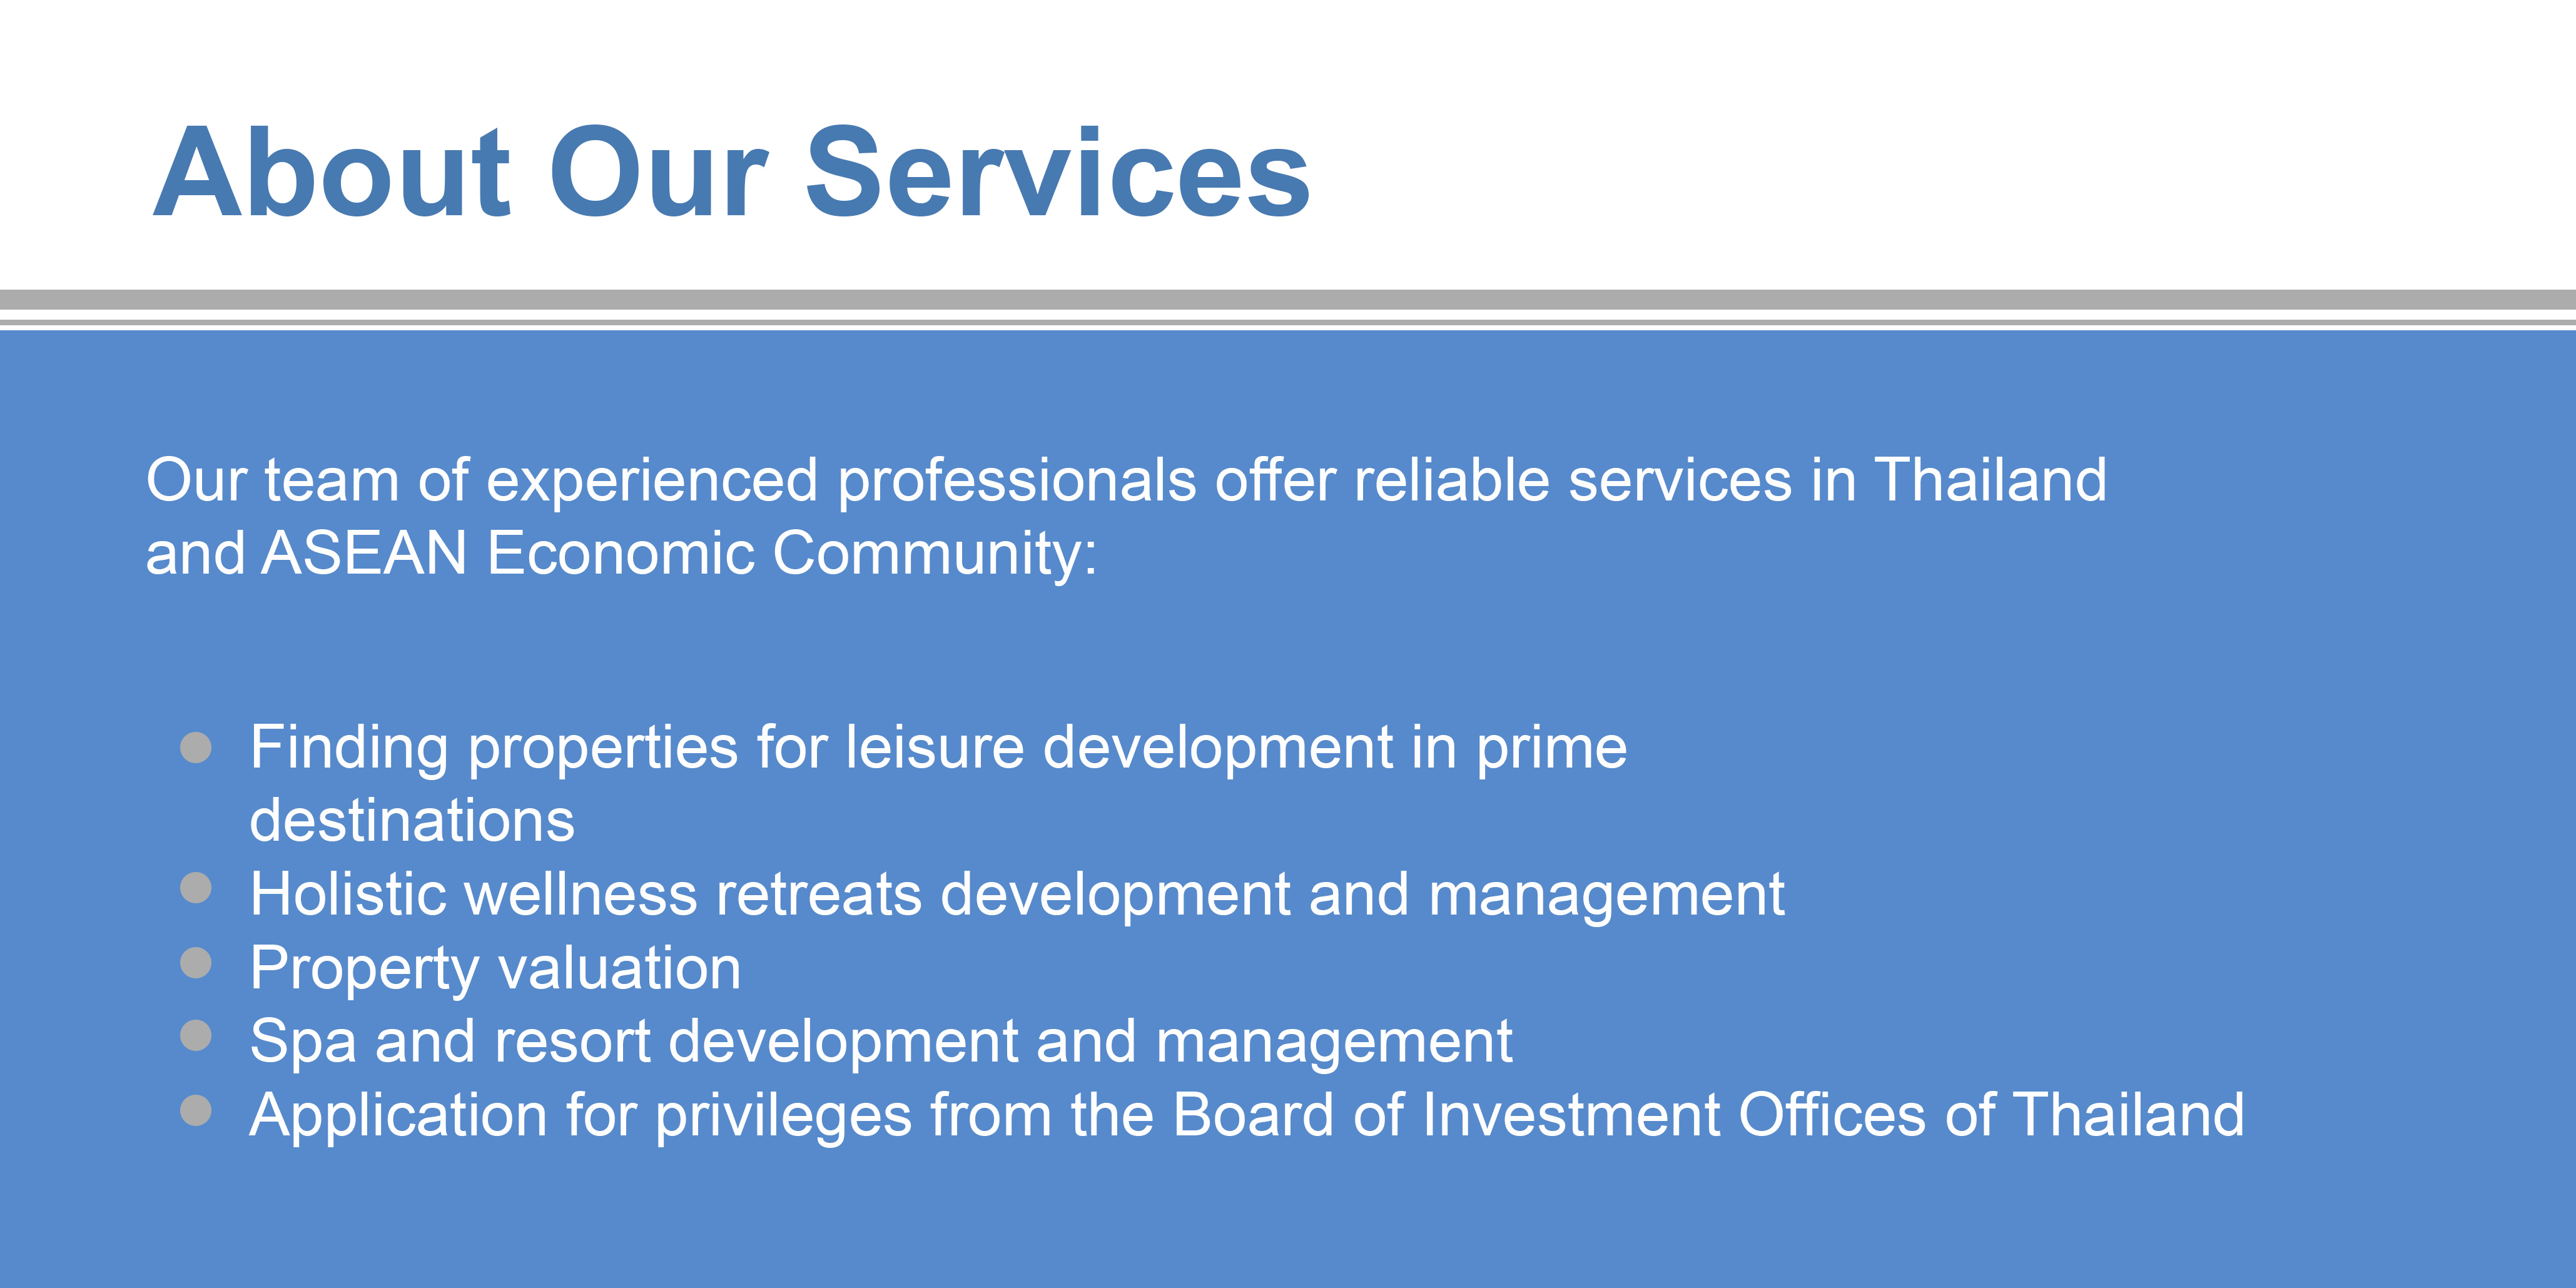 AboutOurServices 5